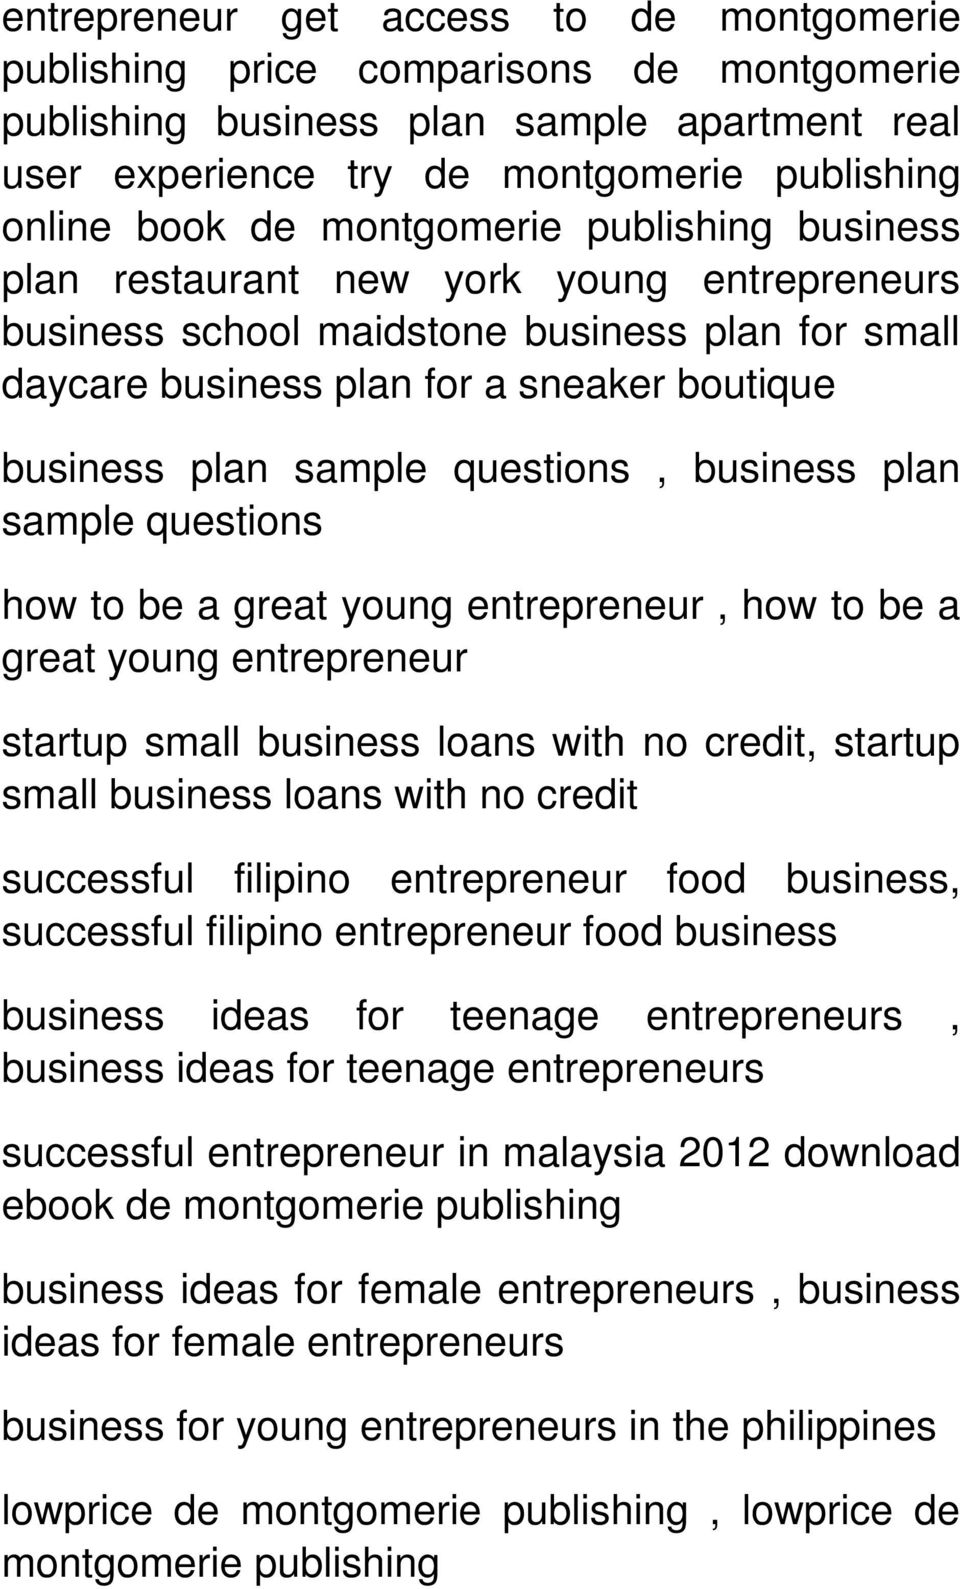 questions, business plan sample questions how to be a great young entrepreneur, how to be a great young entrepreneur startup small business loans with no credit, startup small business loans with no